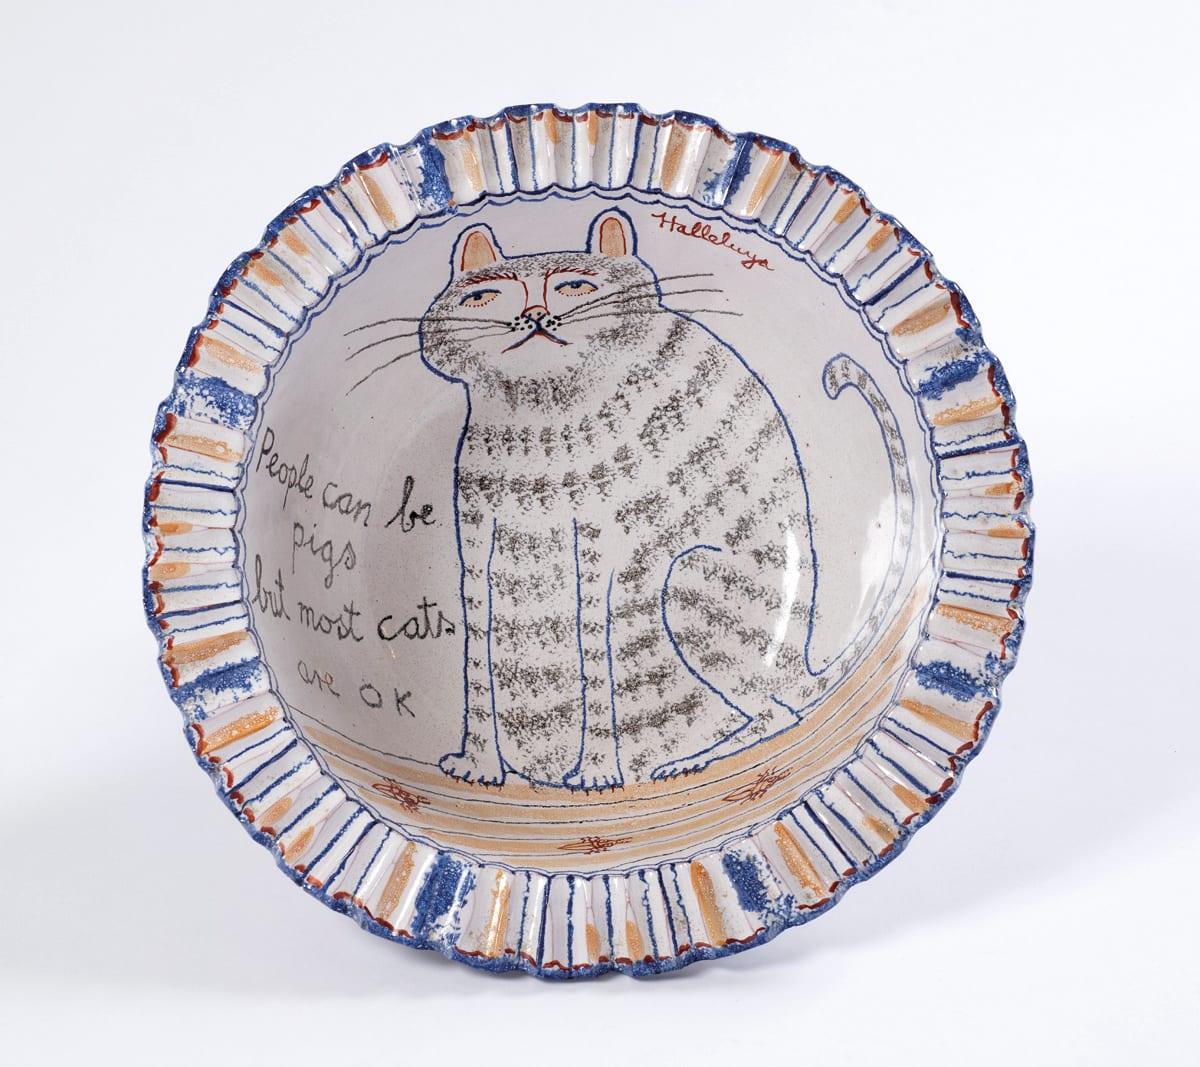 Hylton Nel, People Can Be Pigs But Most Cats Are Ok' Bowl, 1998-12-31